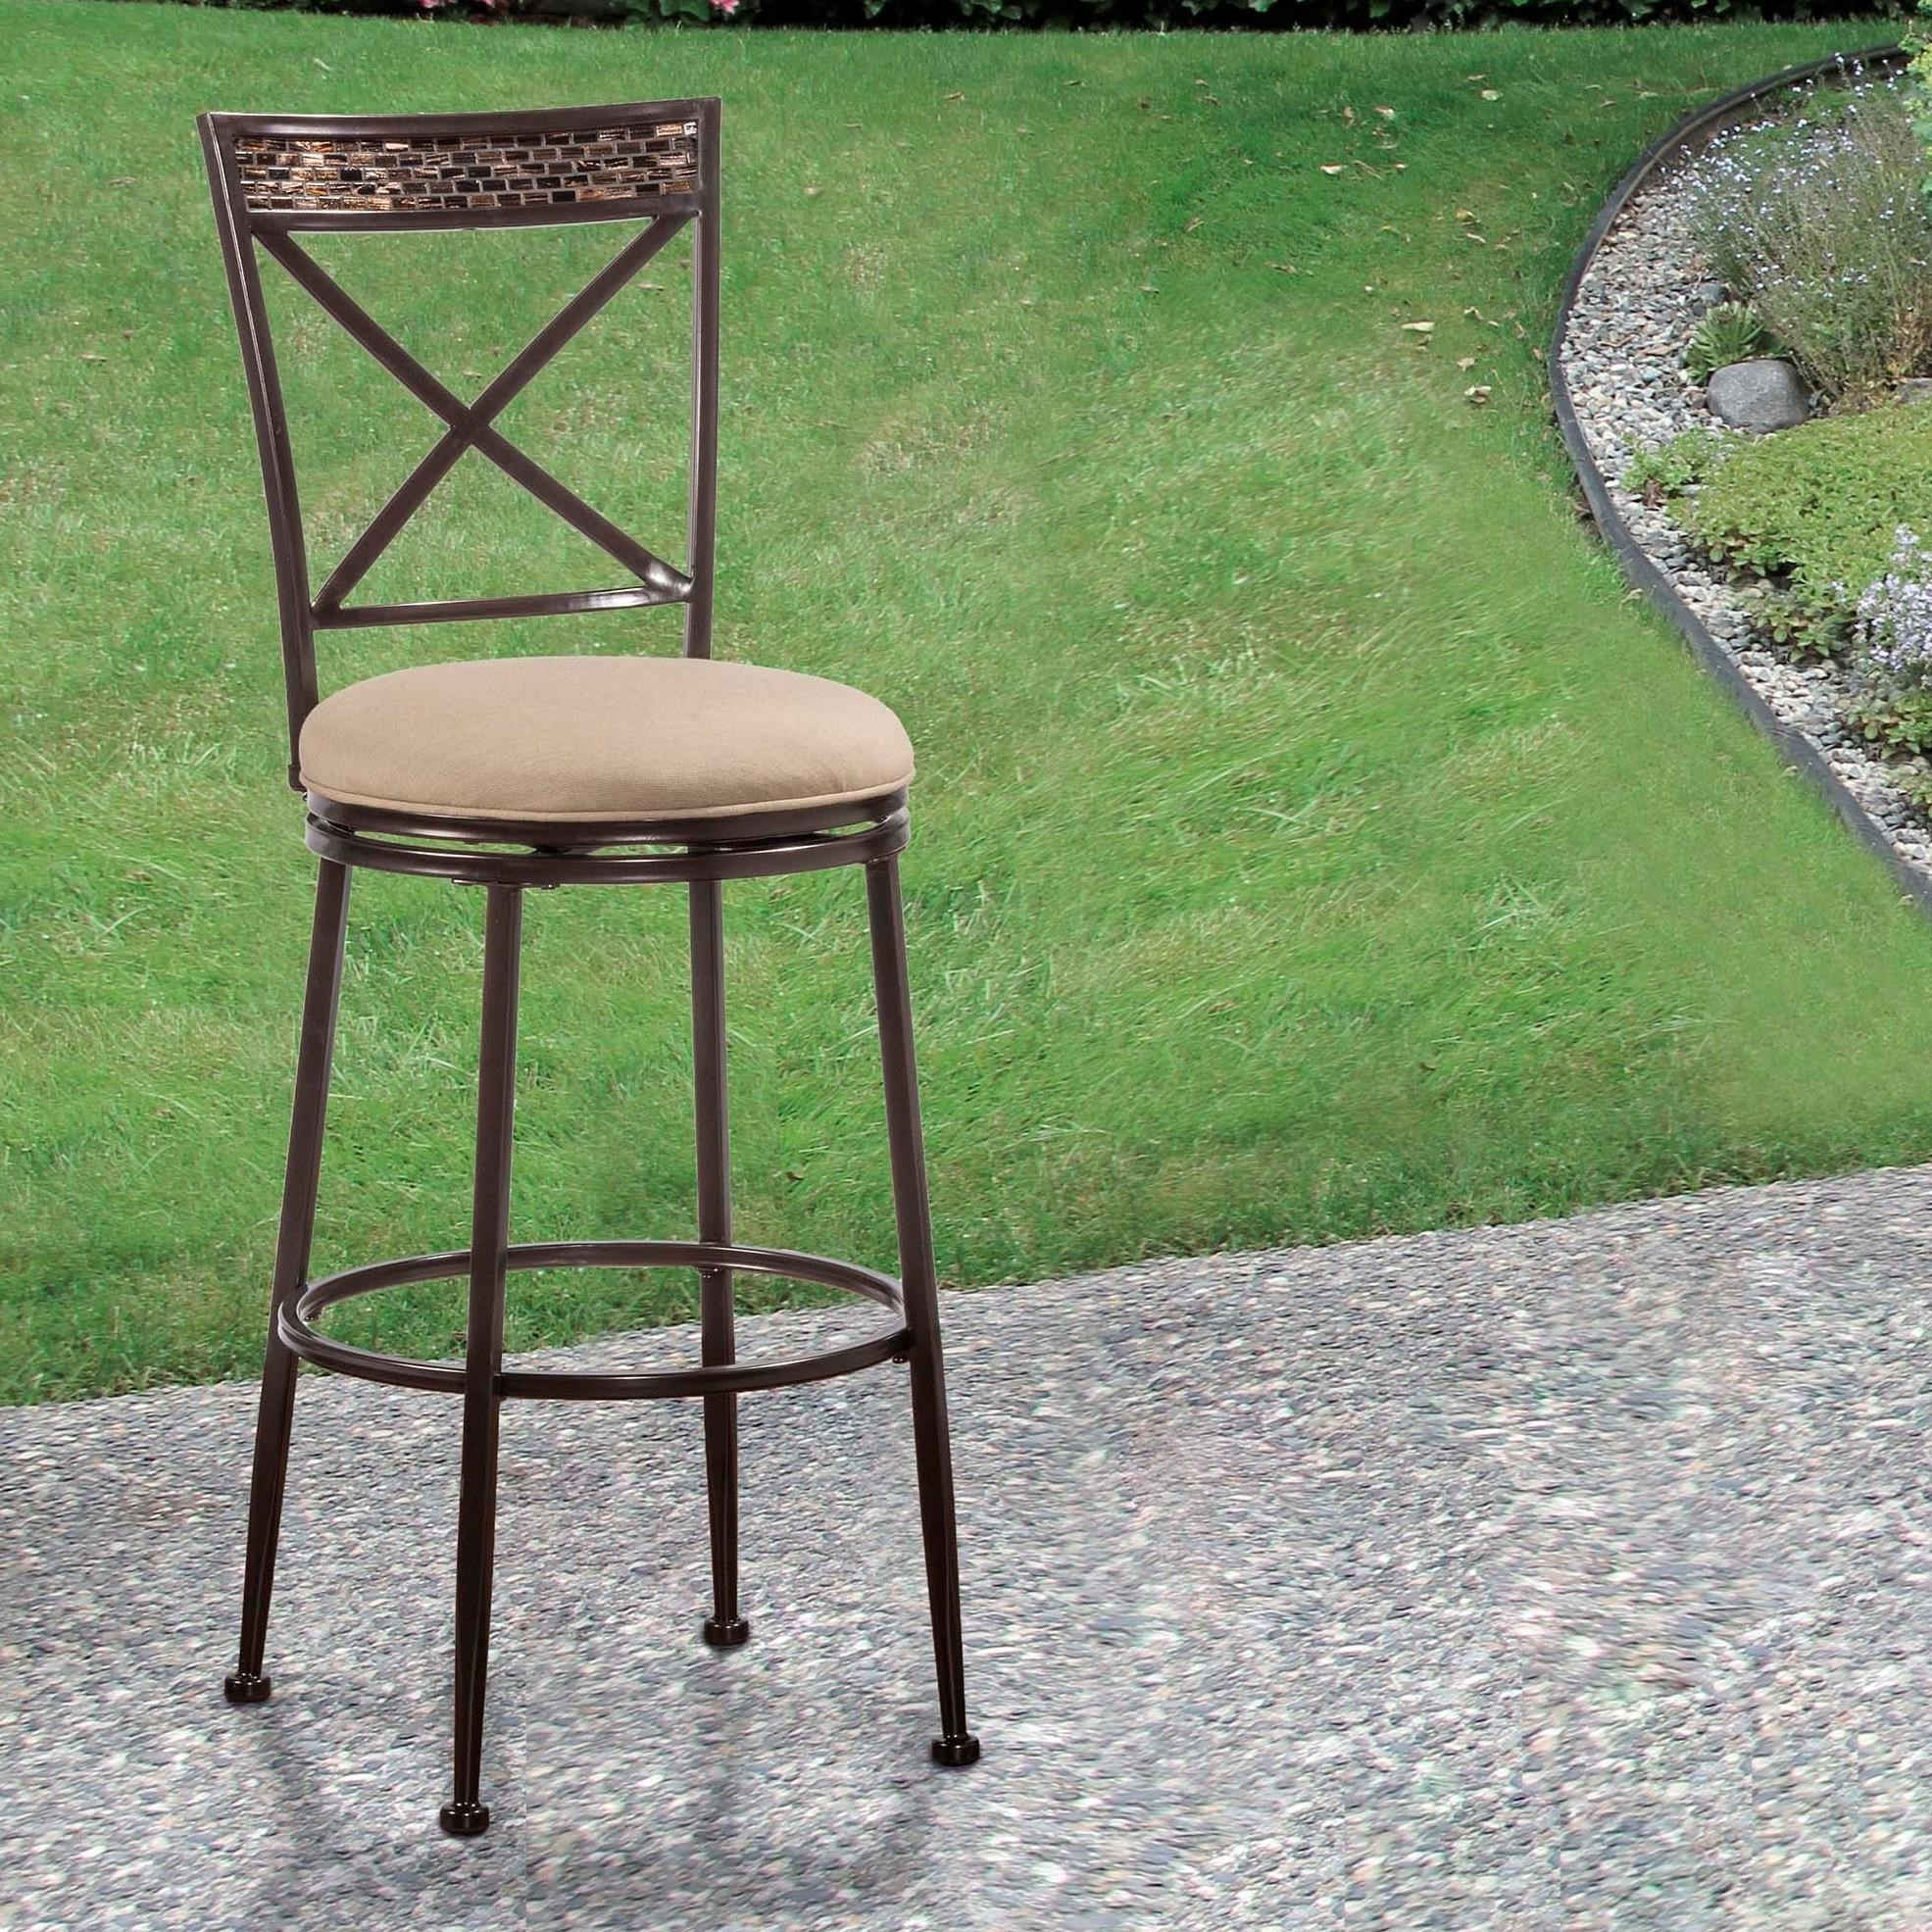 Outside Bar Chairs Hillsdale Indoor Outdoor Stools Swivel Bar Stool With X